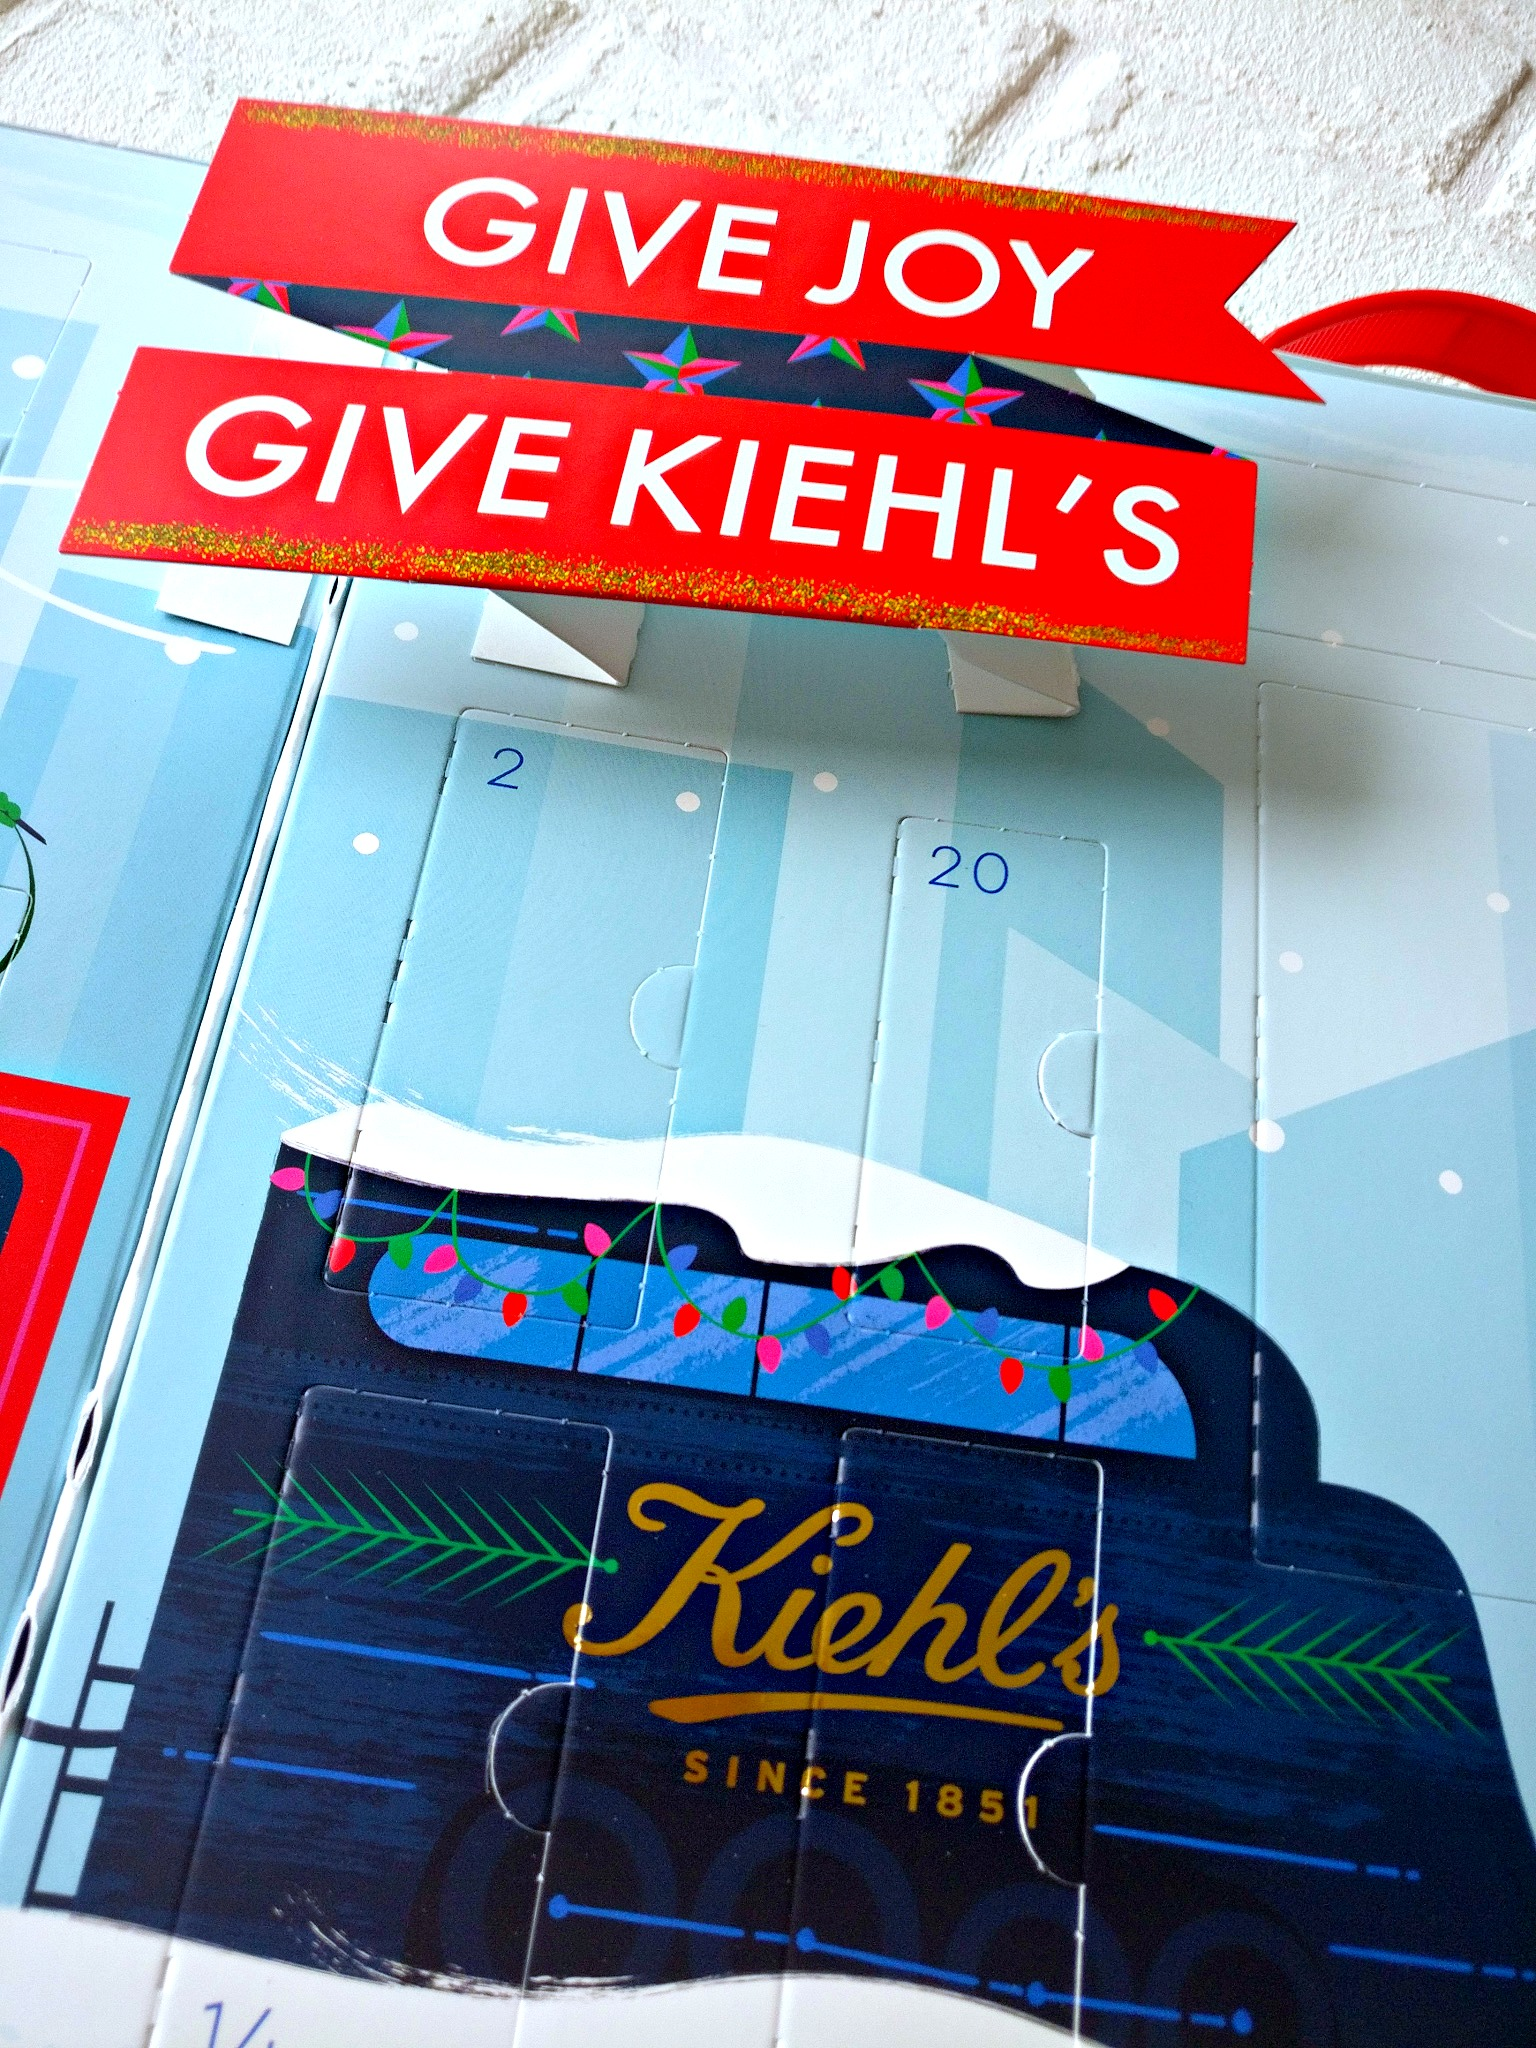 Kiehl's 2018 Limited Edition Adventskalender Give joy Give Kiehl's